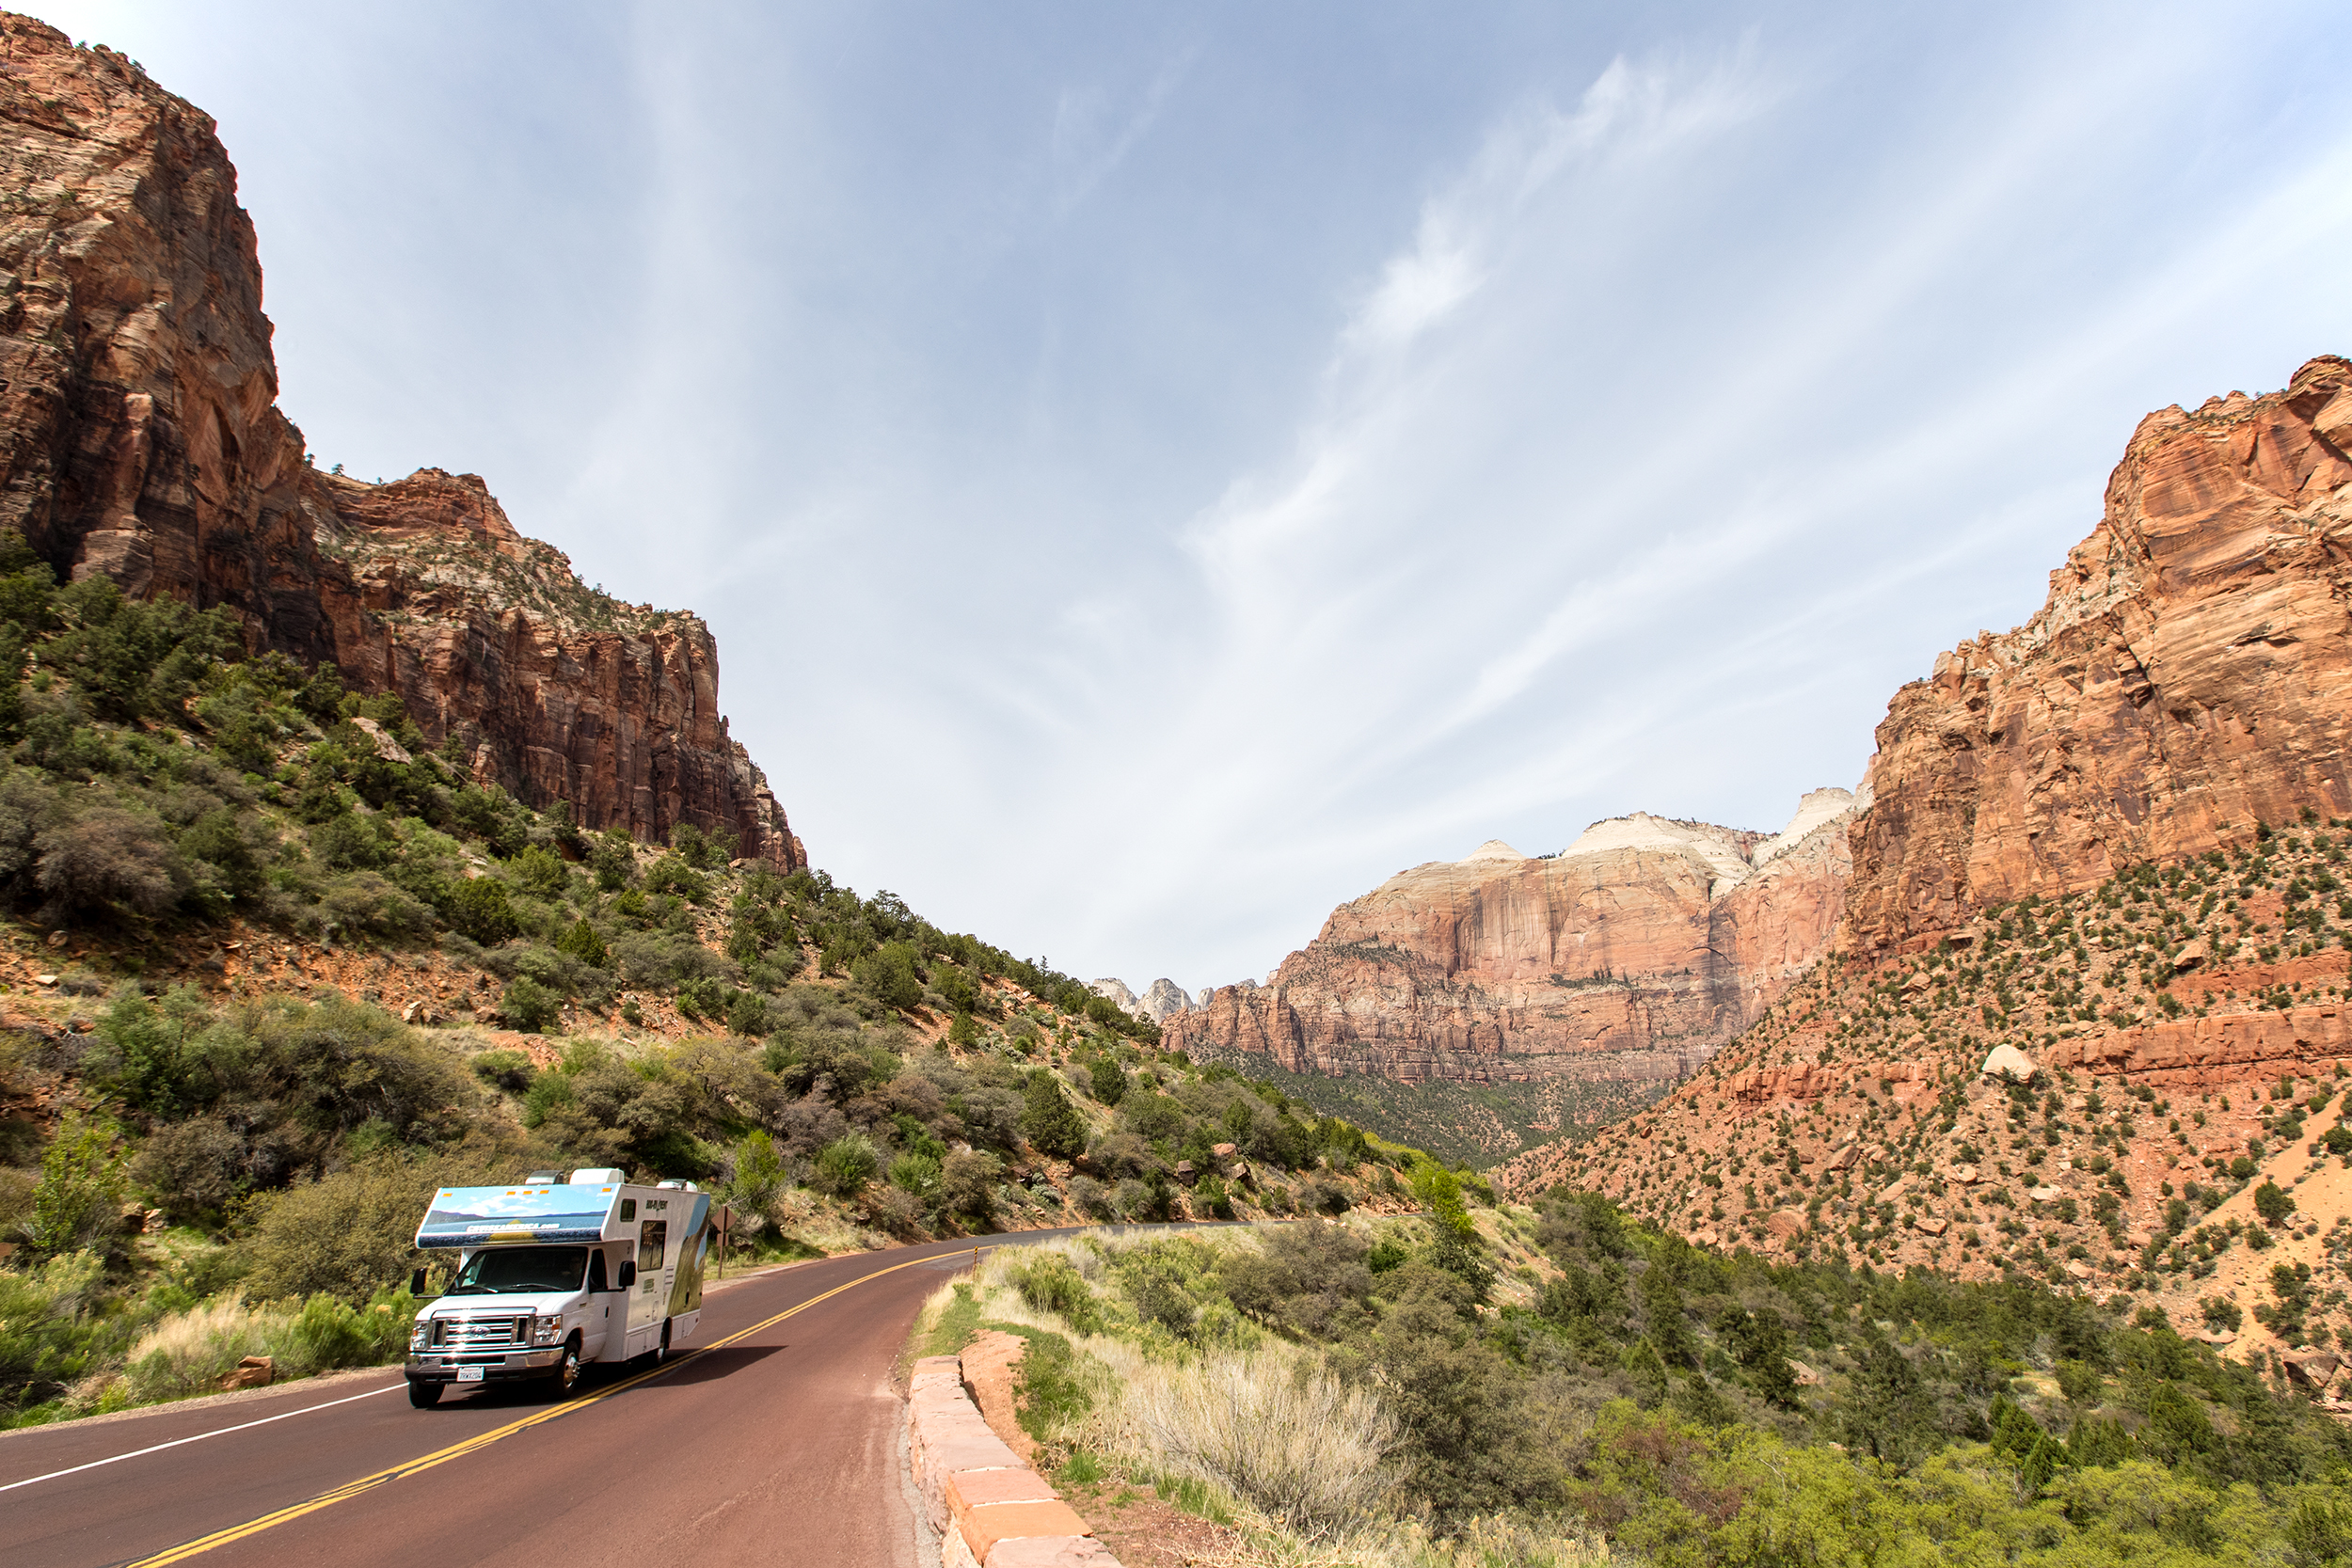 NATLPARKING_travel_rv_adventure_gorving_zionnationalpark_1160_WB